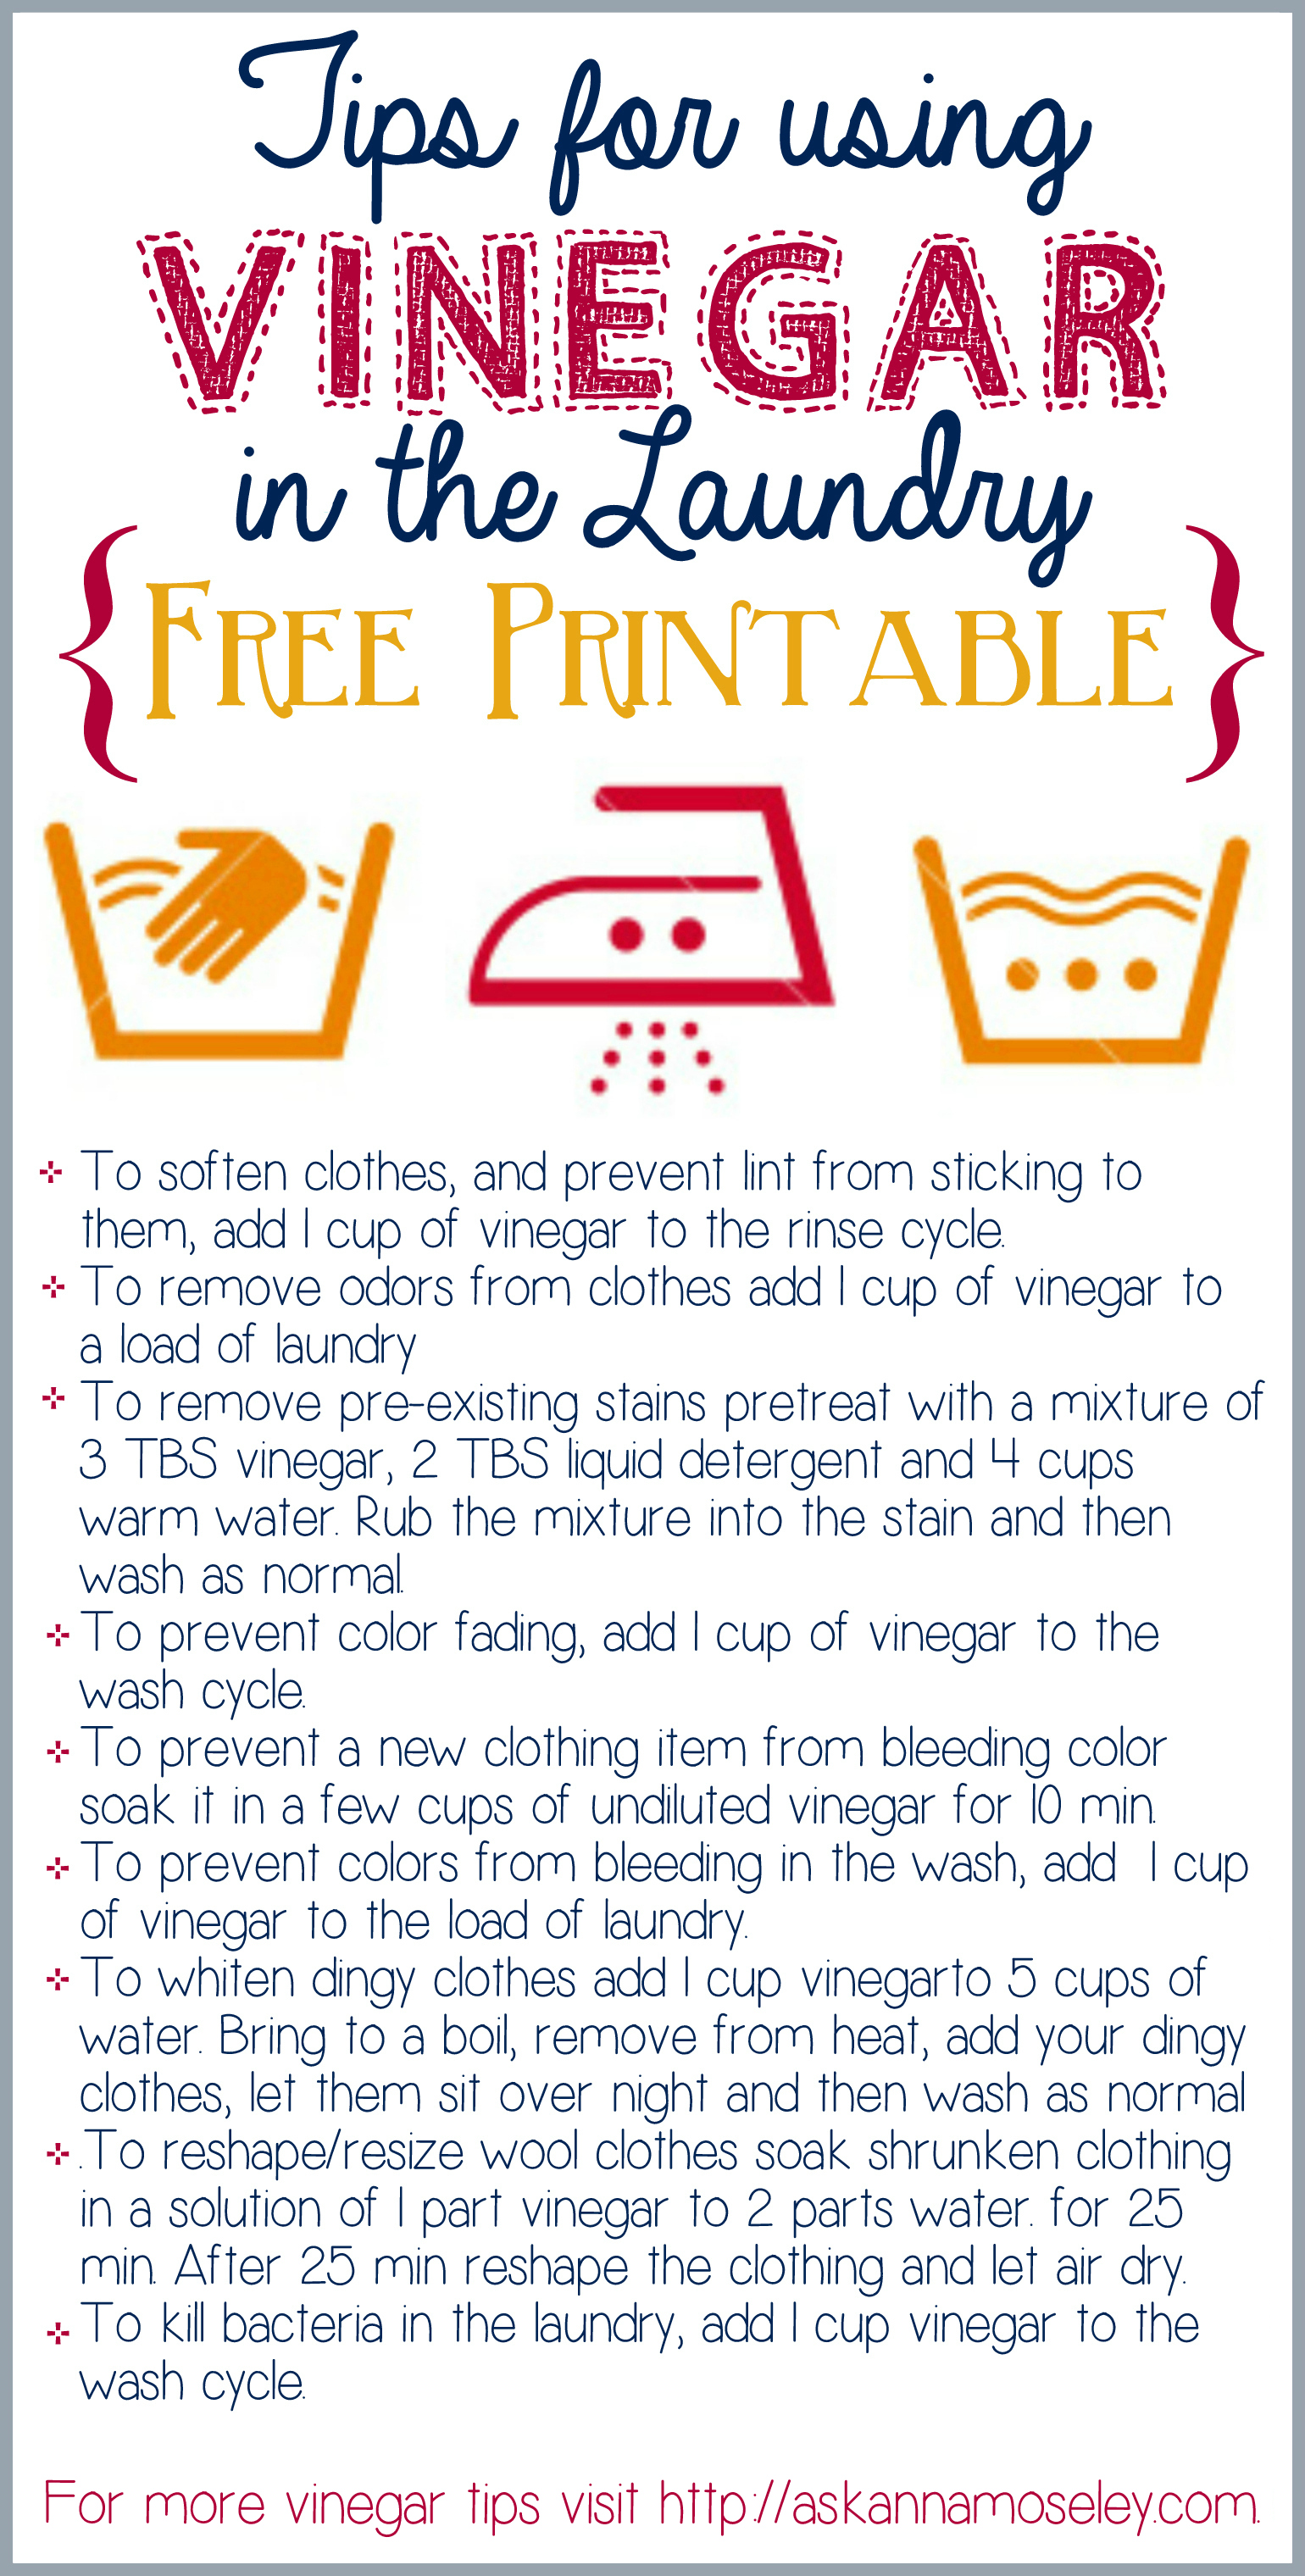 Tips for using Vinegar in the Laundry {free printable} - Ask Anna